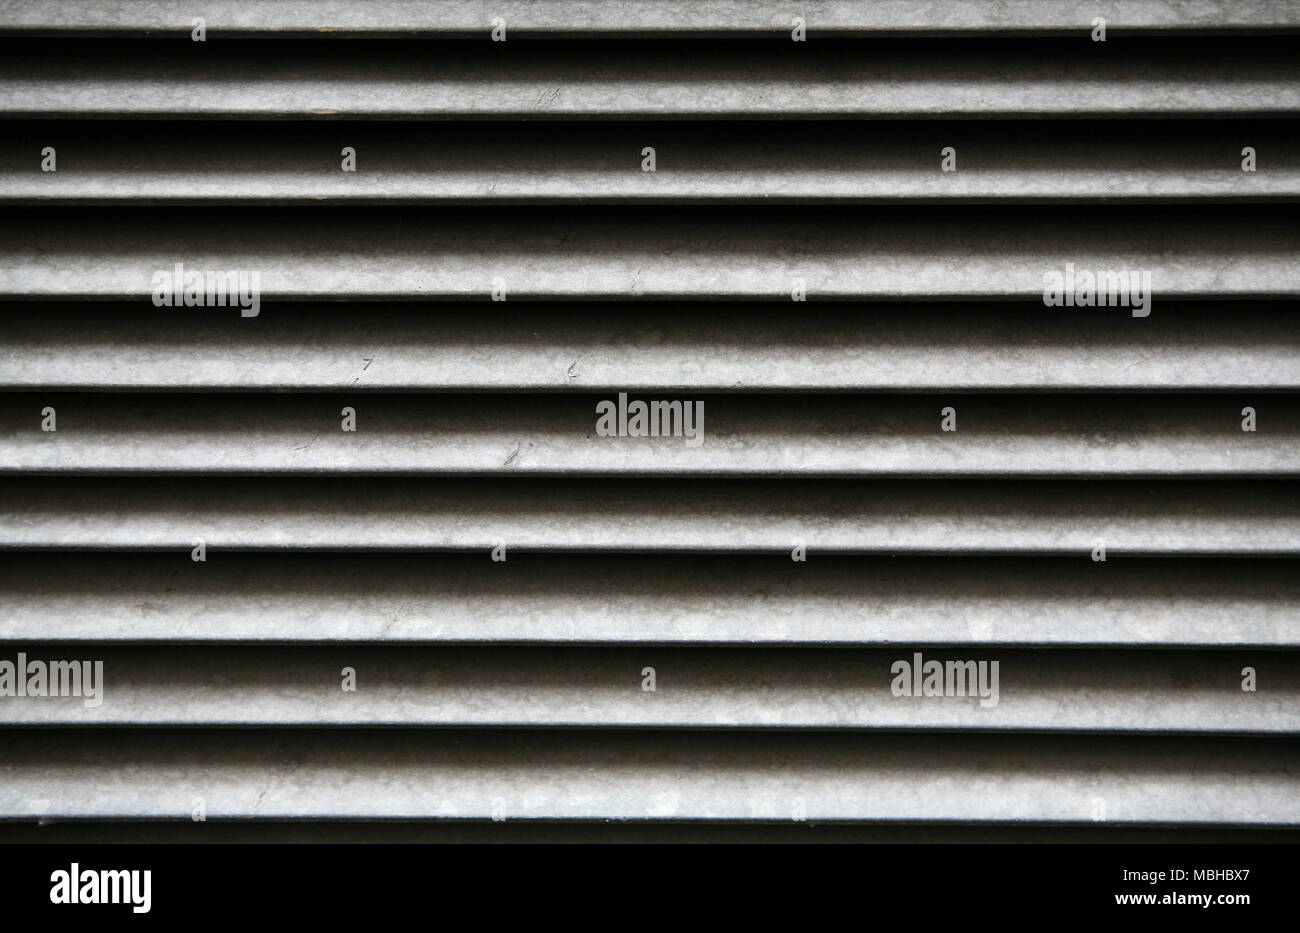 Drain grates with light background texture - Stock Image